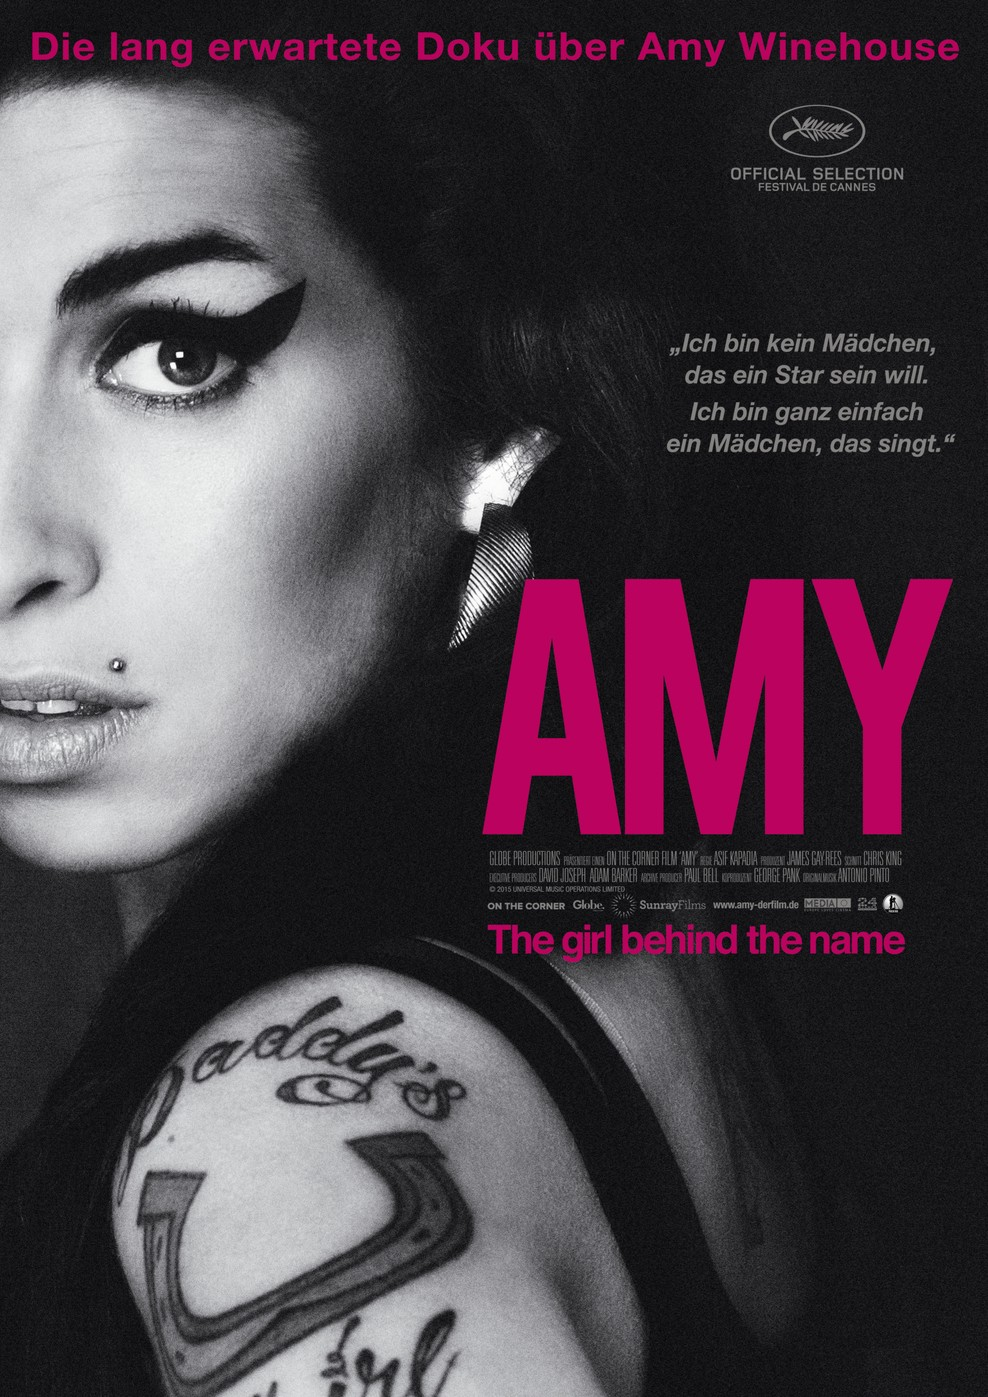 Amy - The Girl Behind the Name (Poster)